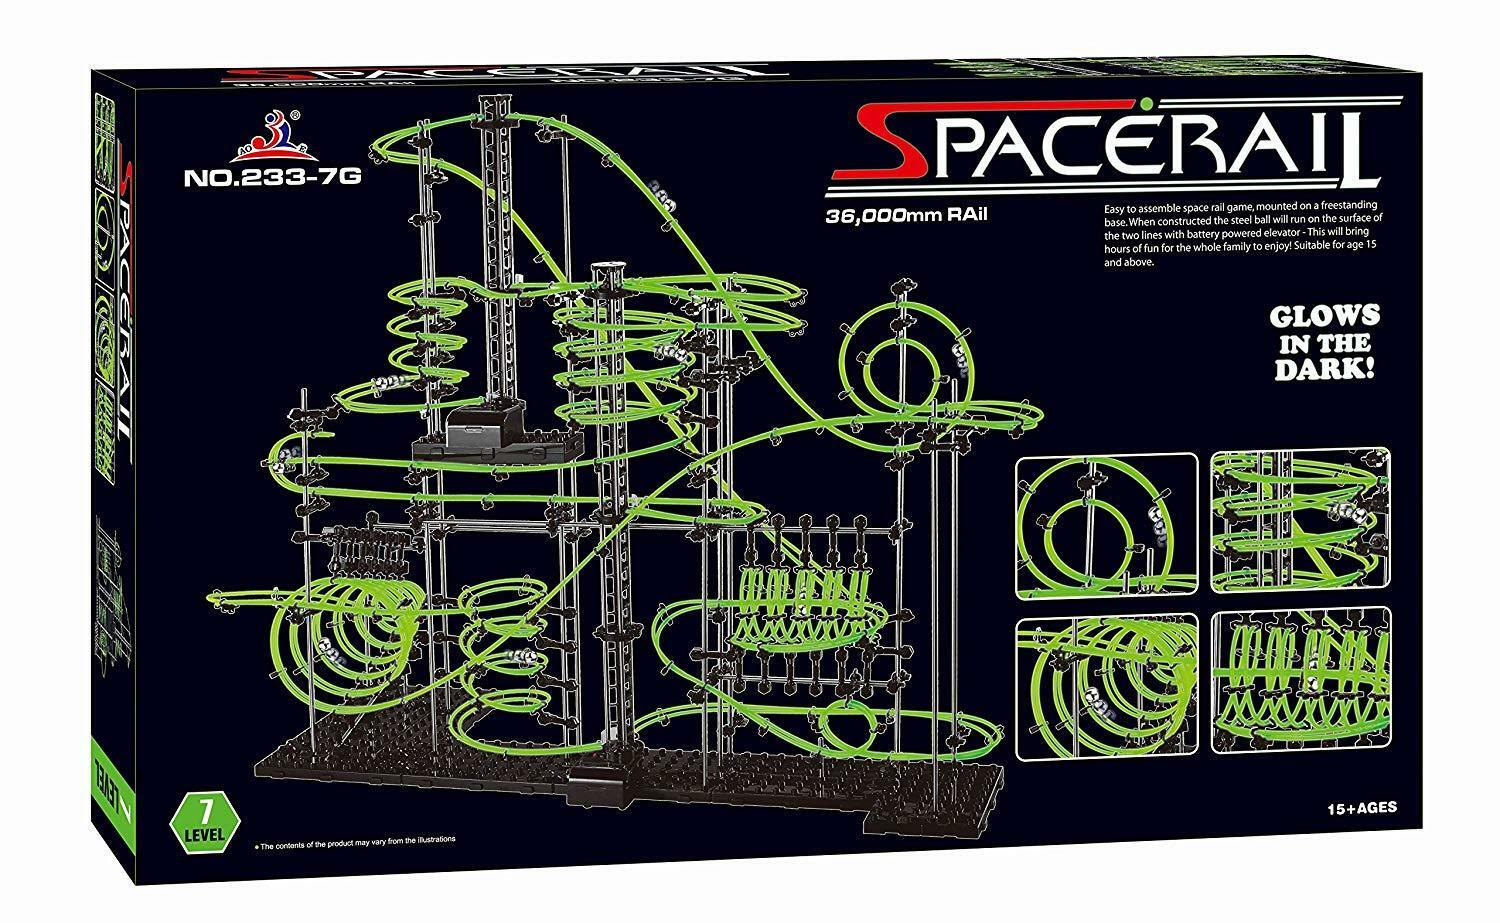 SpaceRail Level 7 36,000mm Glow in The The in Dark Marble Run Fun DIY Spacwarp Set 00263c